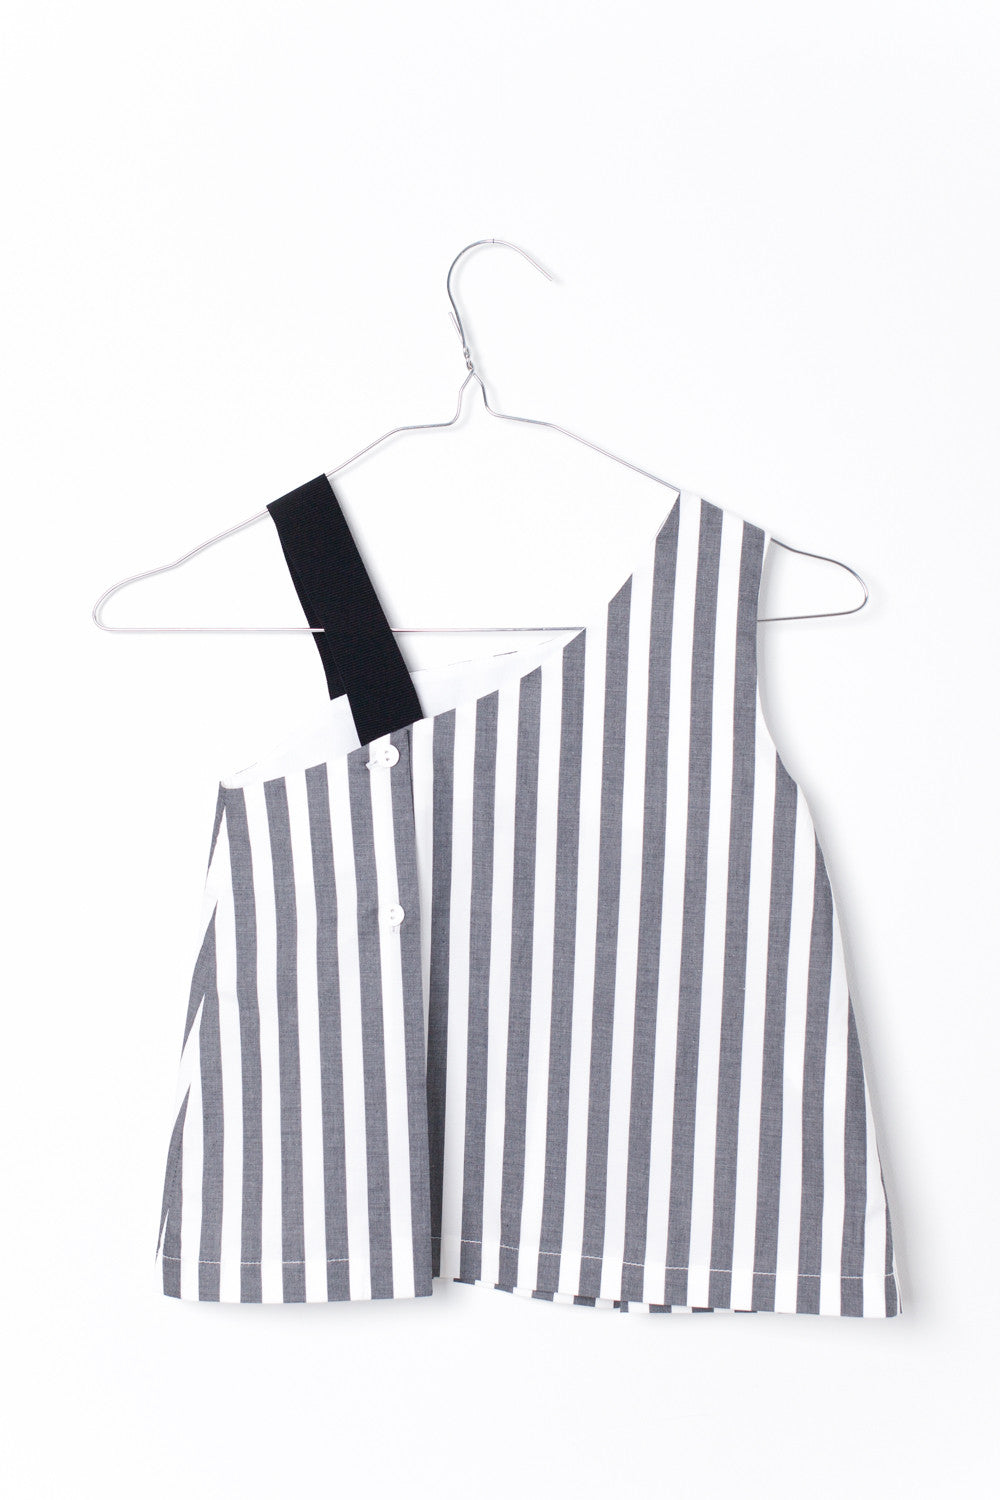 Motoreta Maya Black Stripes Blouse - Ladida